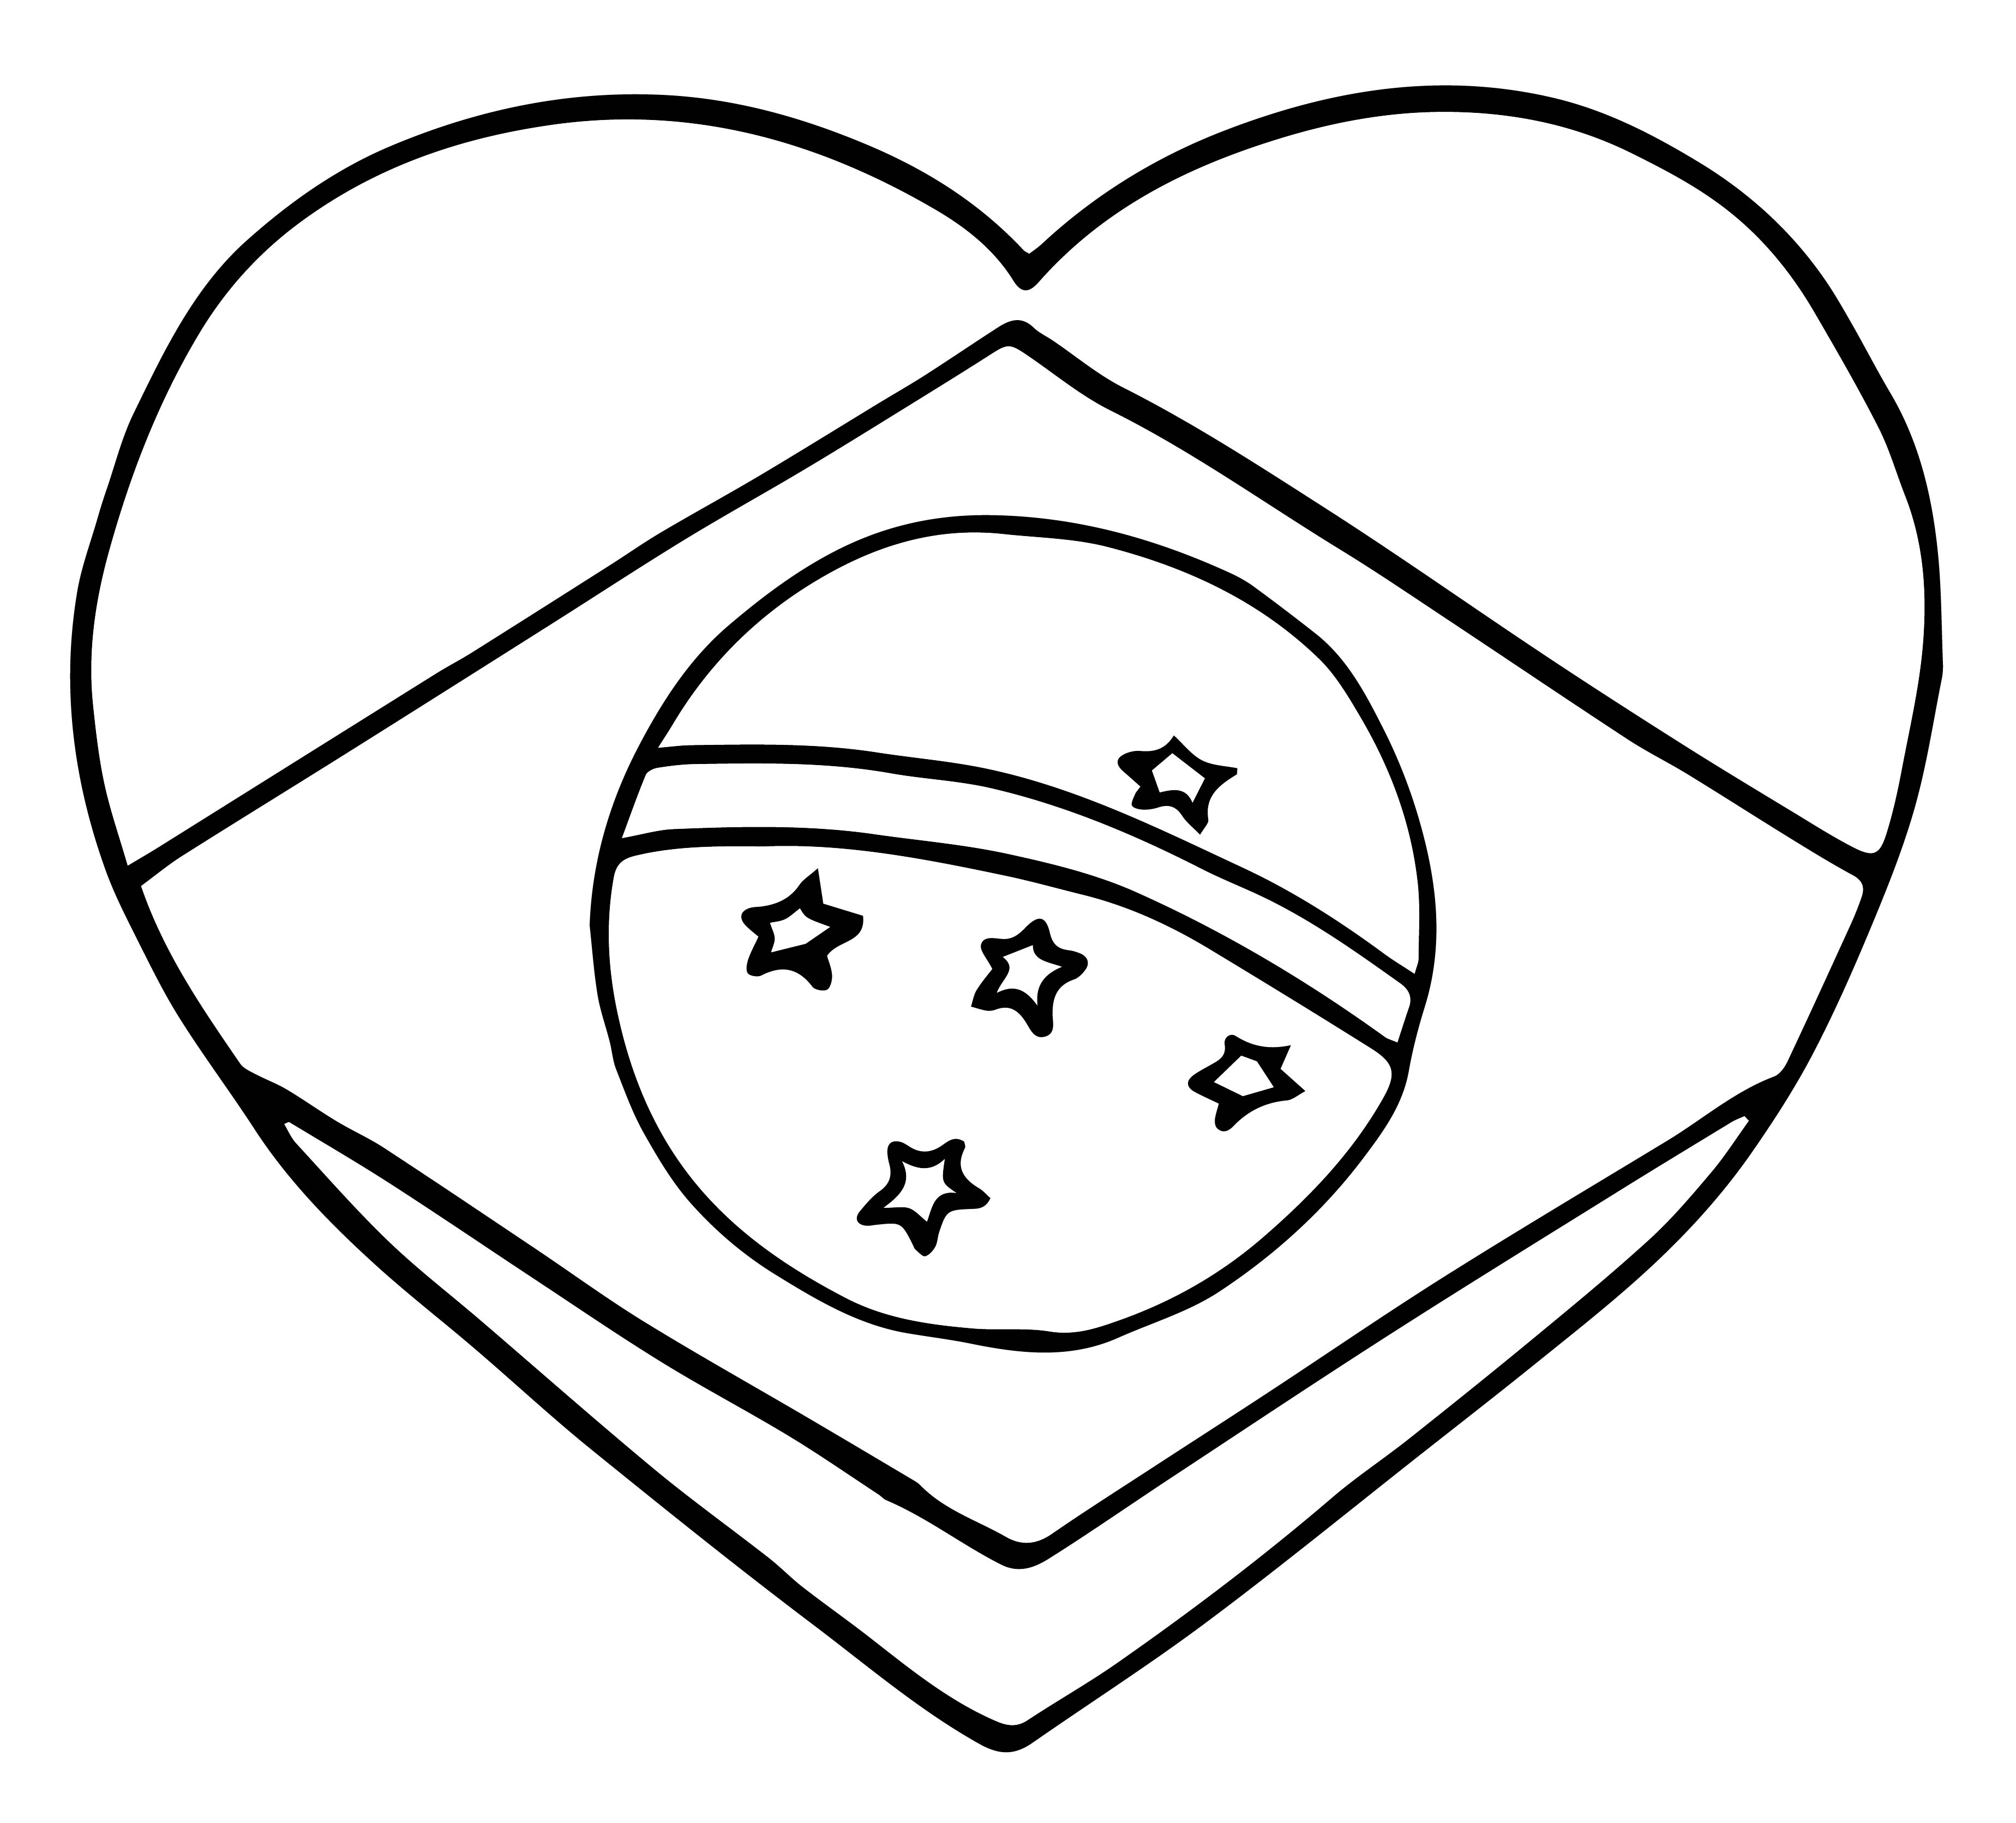 Brasil Heart Coloring Page